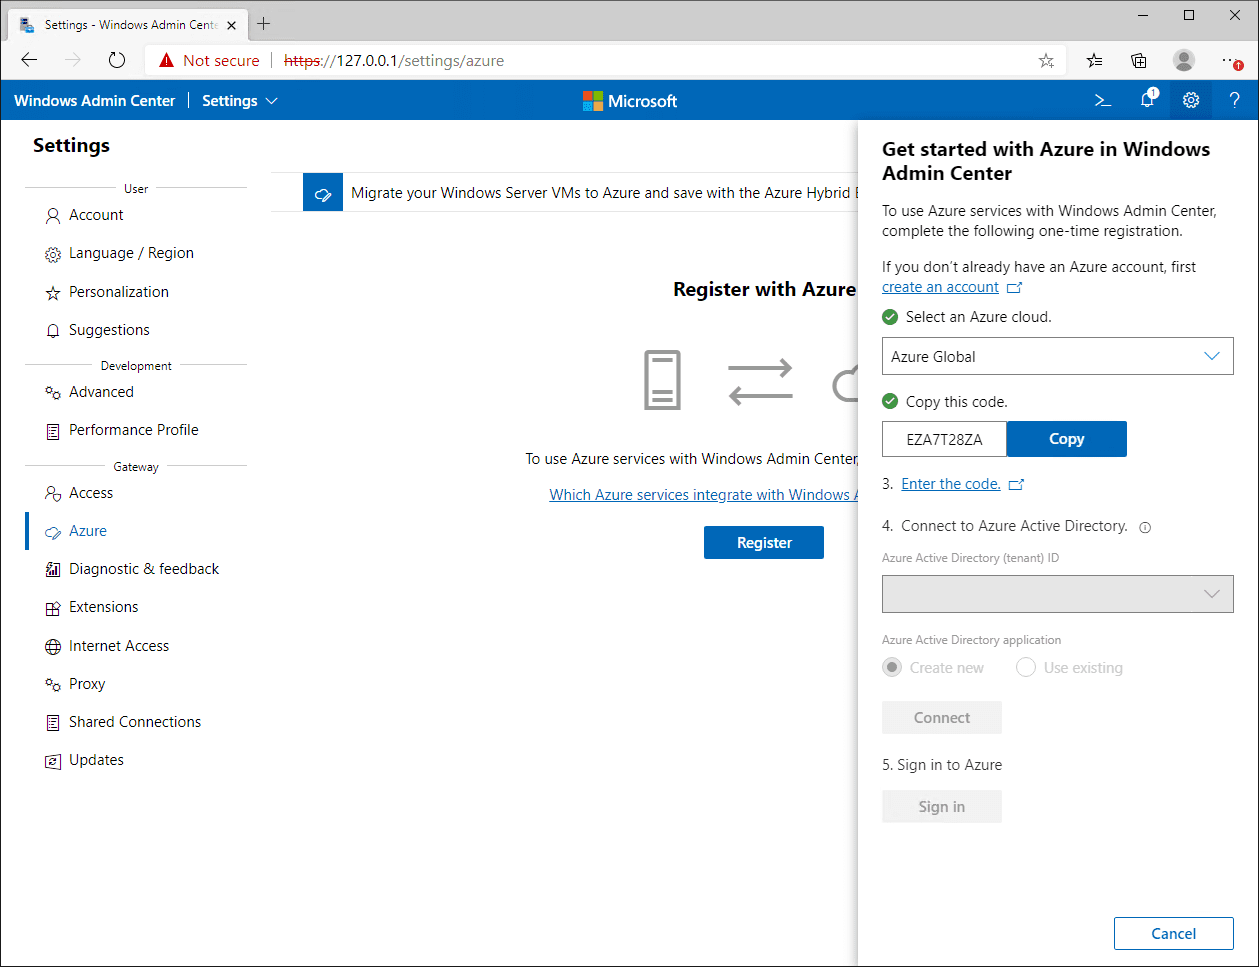 Select the Azure cloud and copy the code